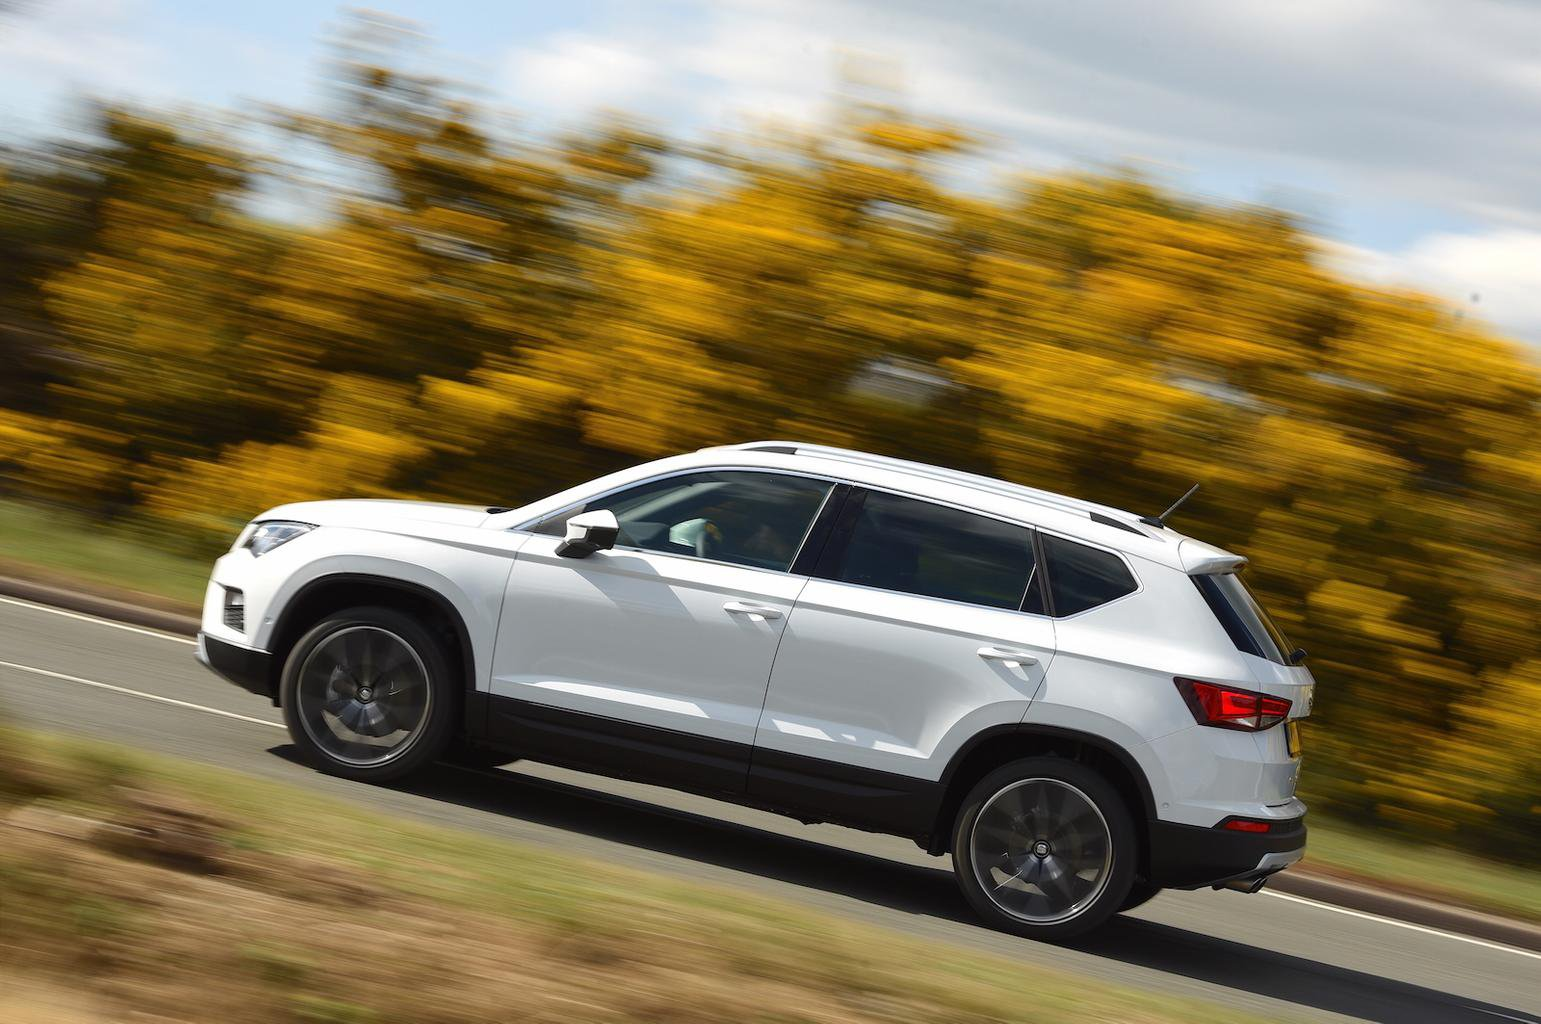 Seat Ateca 1.4 TSI DSG 2017 review